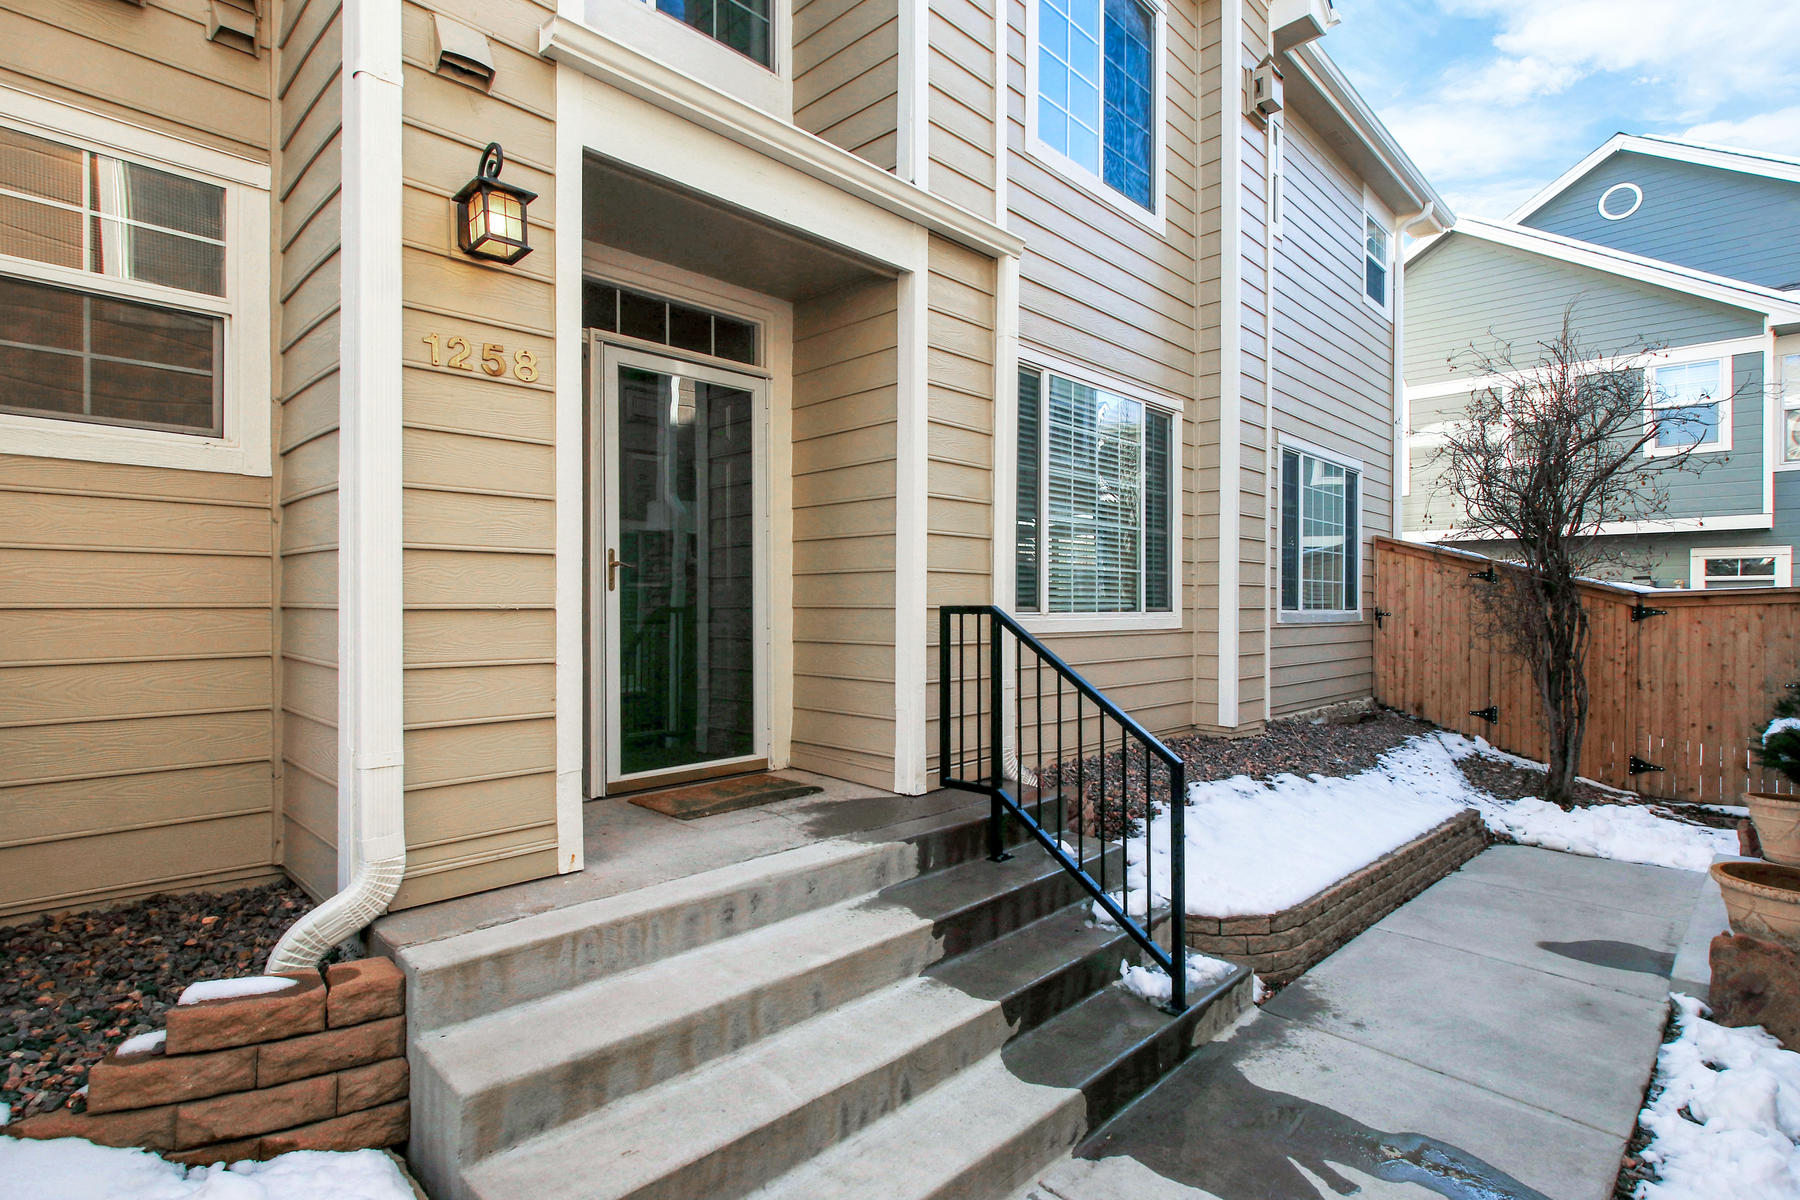 Property for Active at Perfection in Carlyle Park! 1258 Carlyle Park Cir Highlands Ranch, Colorado 80129 United States